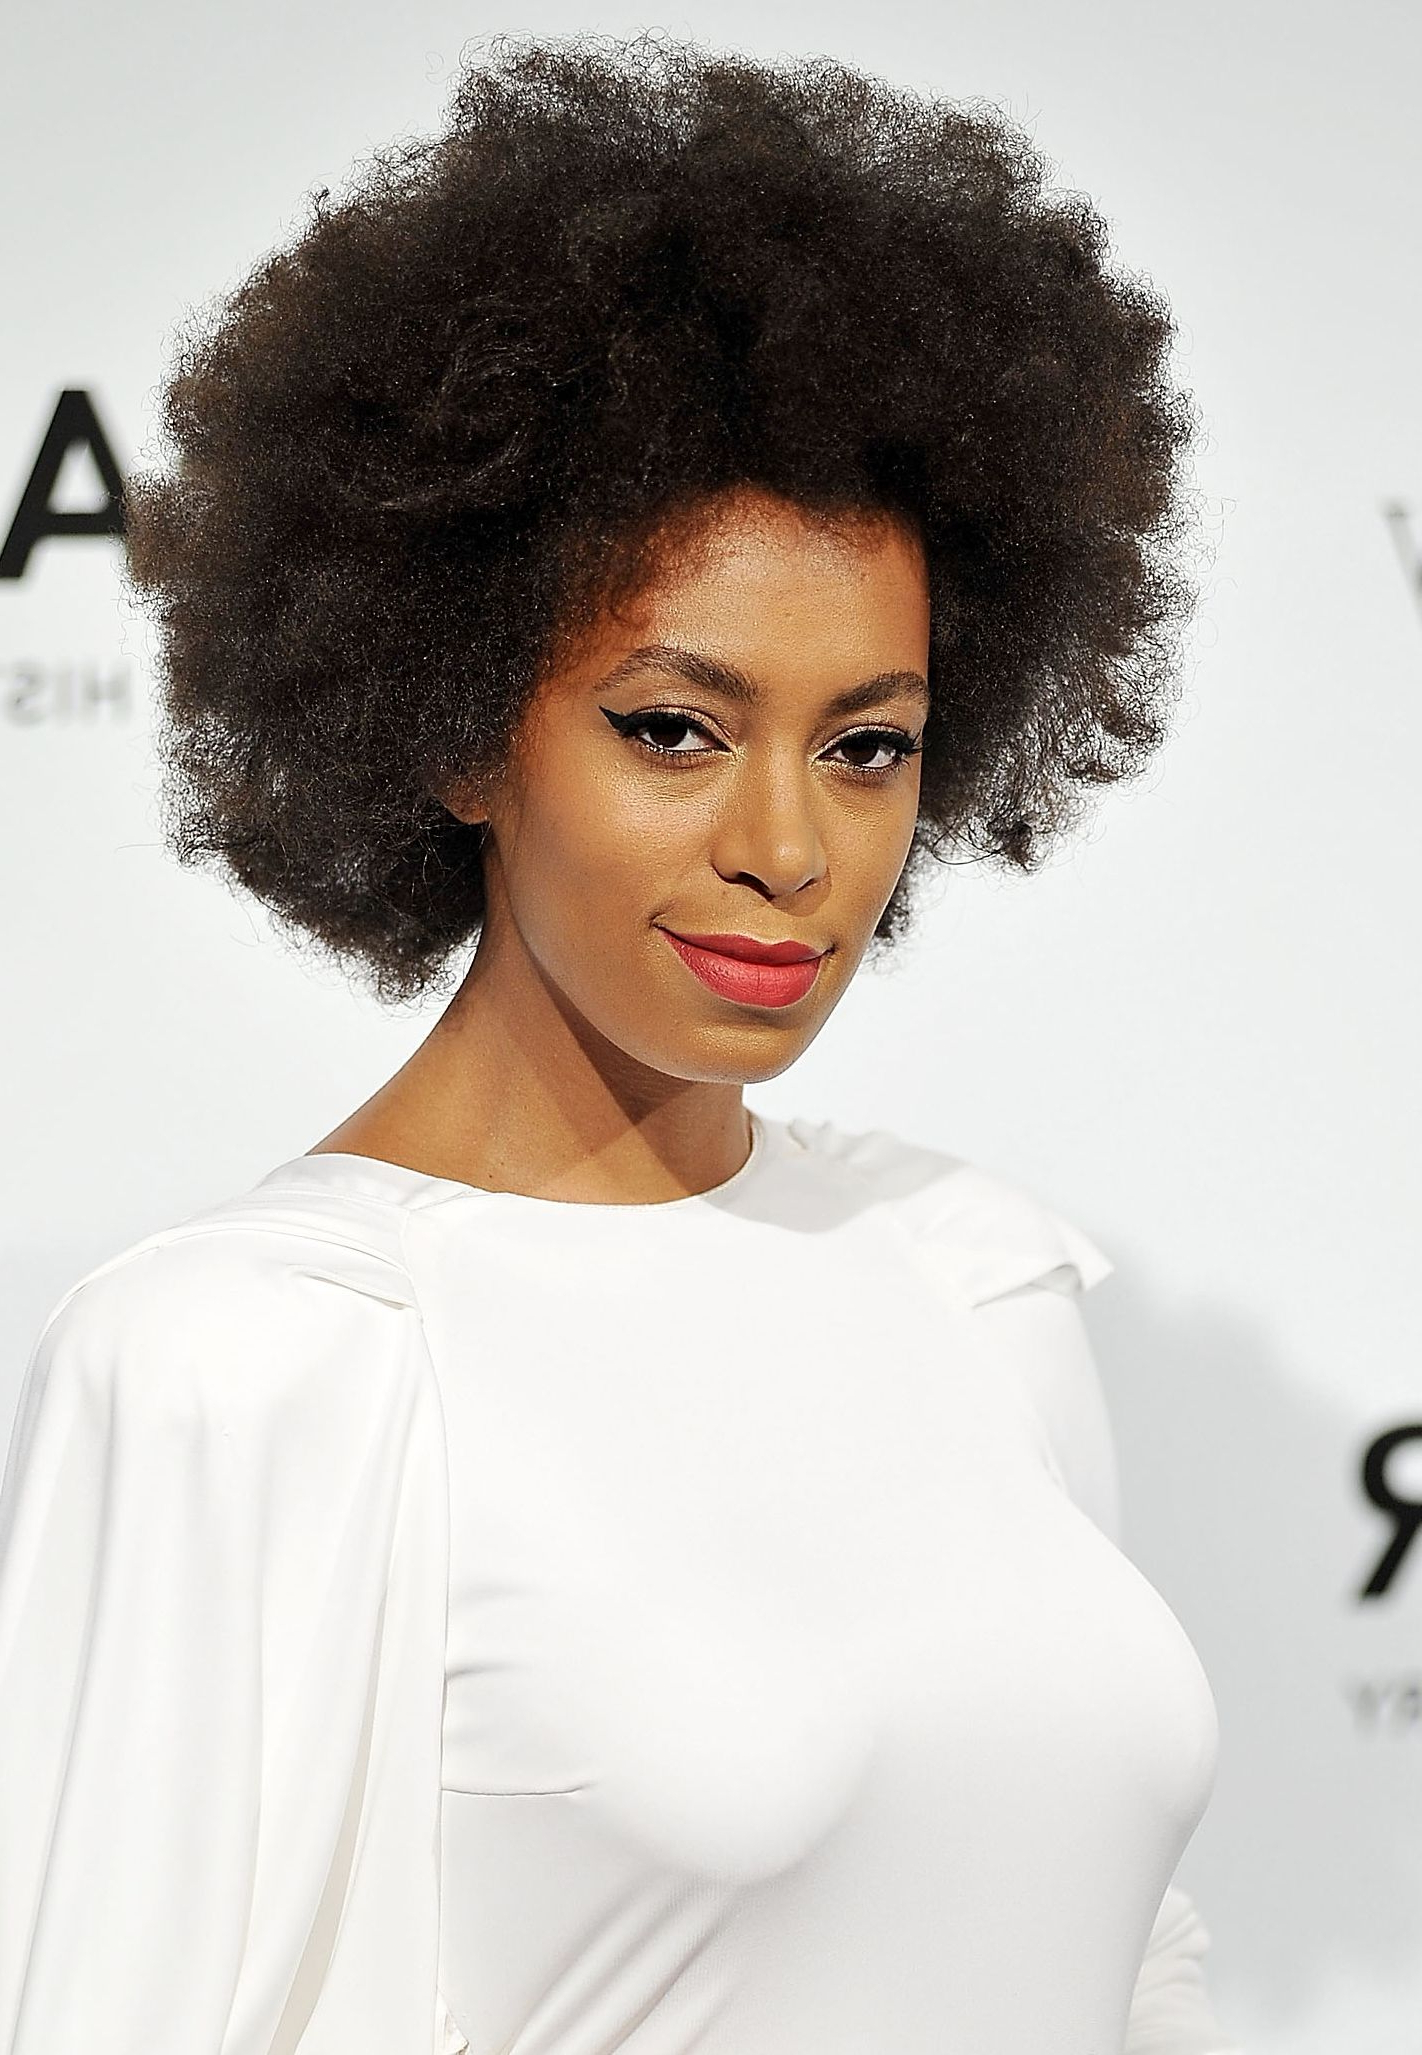 30 Easy Natural Hairstyles For Black Women – Short, Medium & Long Inside Favorite Afro Medium Haircuts (View 4 of 20)